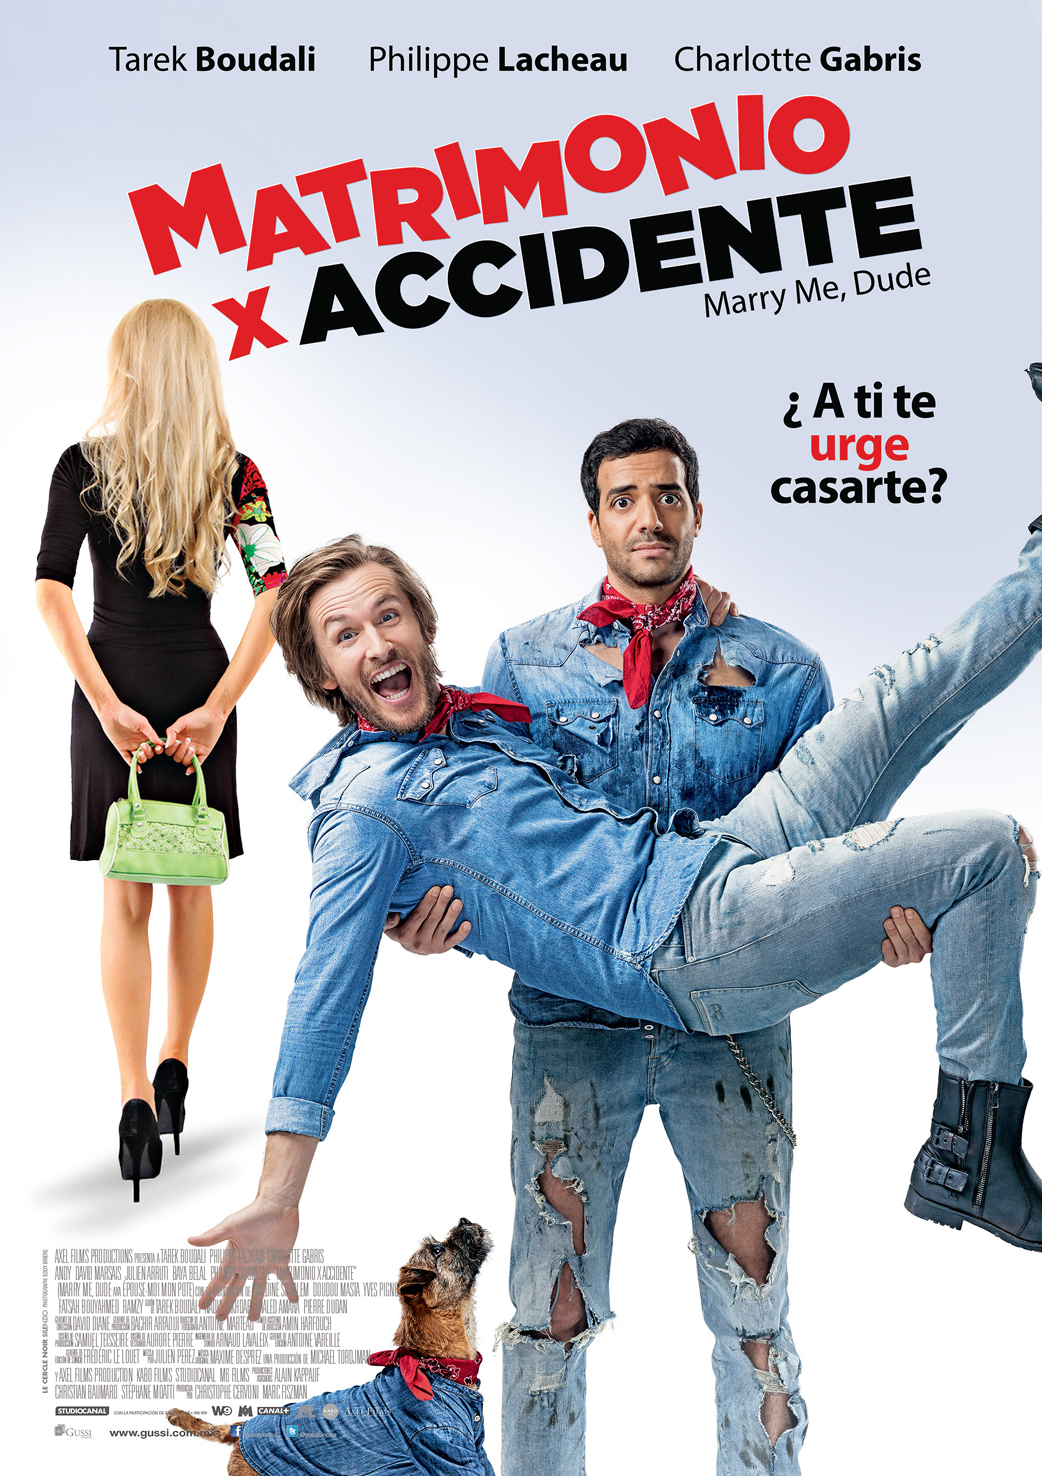 Matrimonio In Latino : Matrimonio accidente ver pelicula online